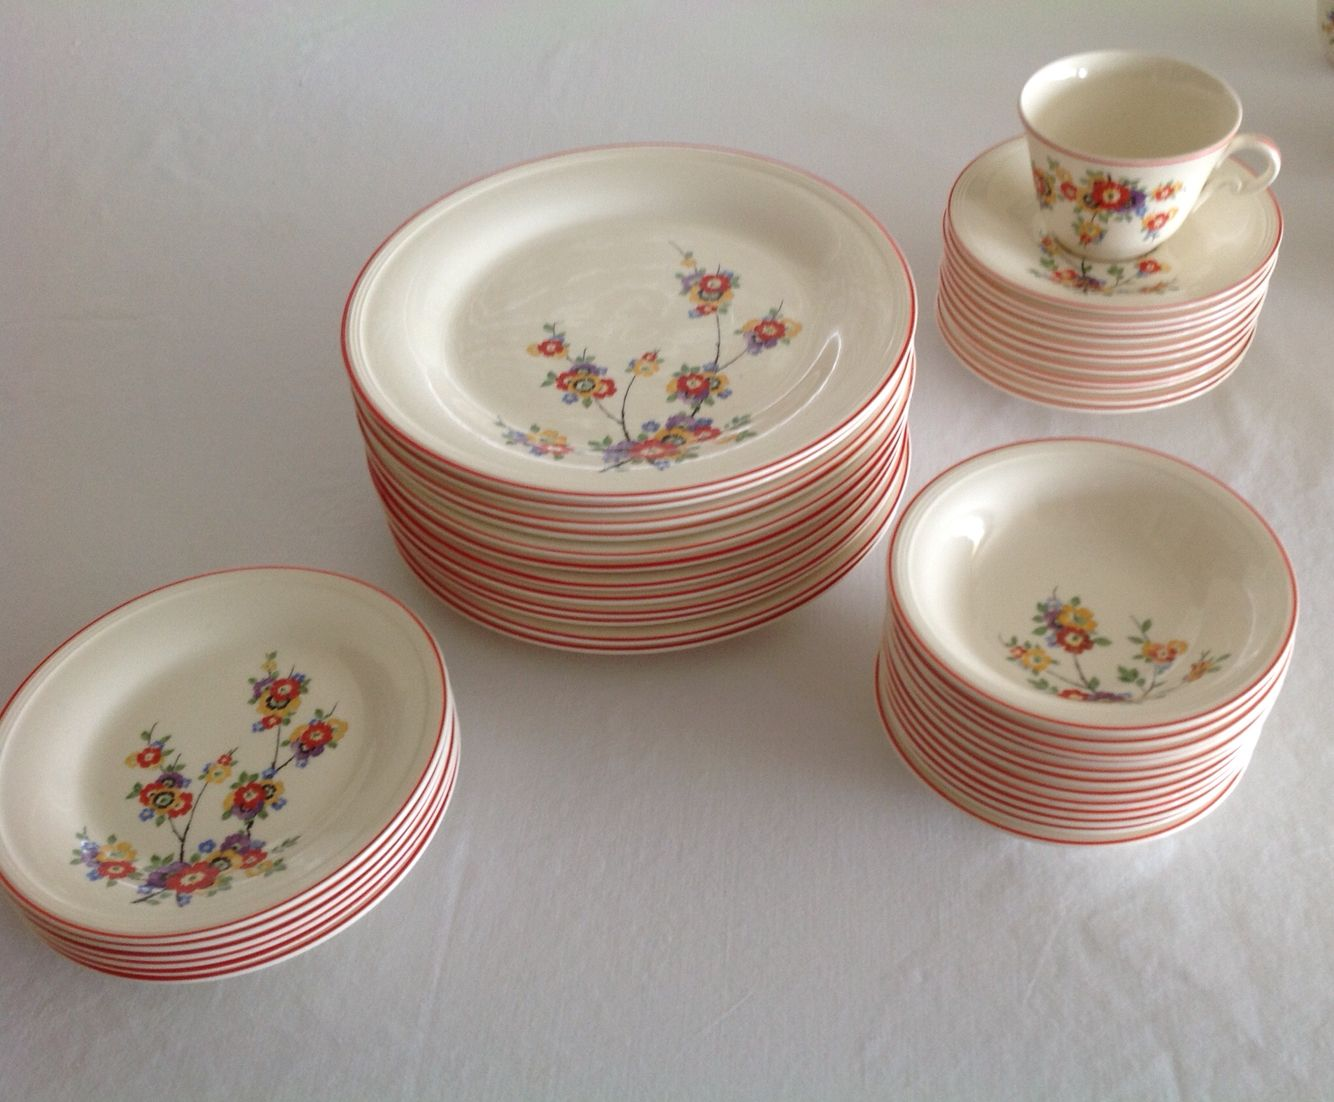 Love the pattern and the colors!! Edwin Knowles plates.